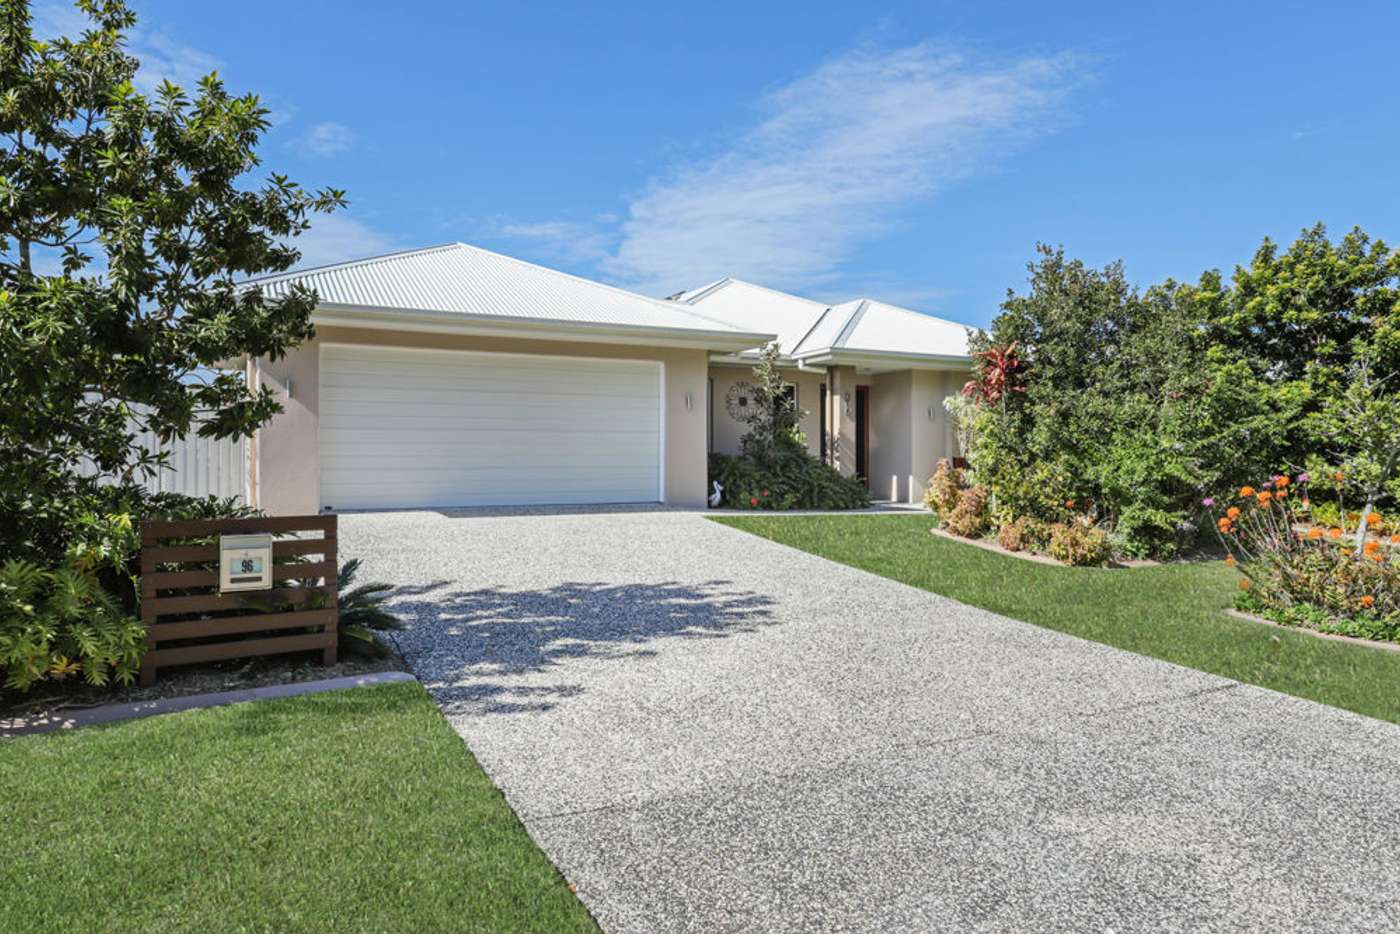 Main view of Homely house listing, 96 Tweddell Drive, Pelican Waters QLD 4551